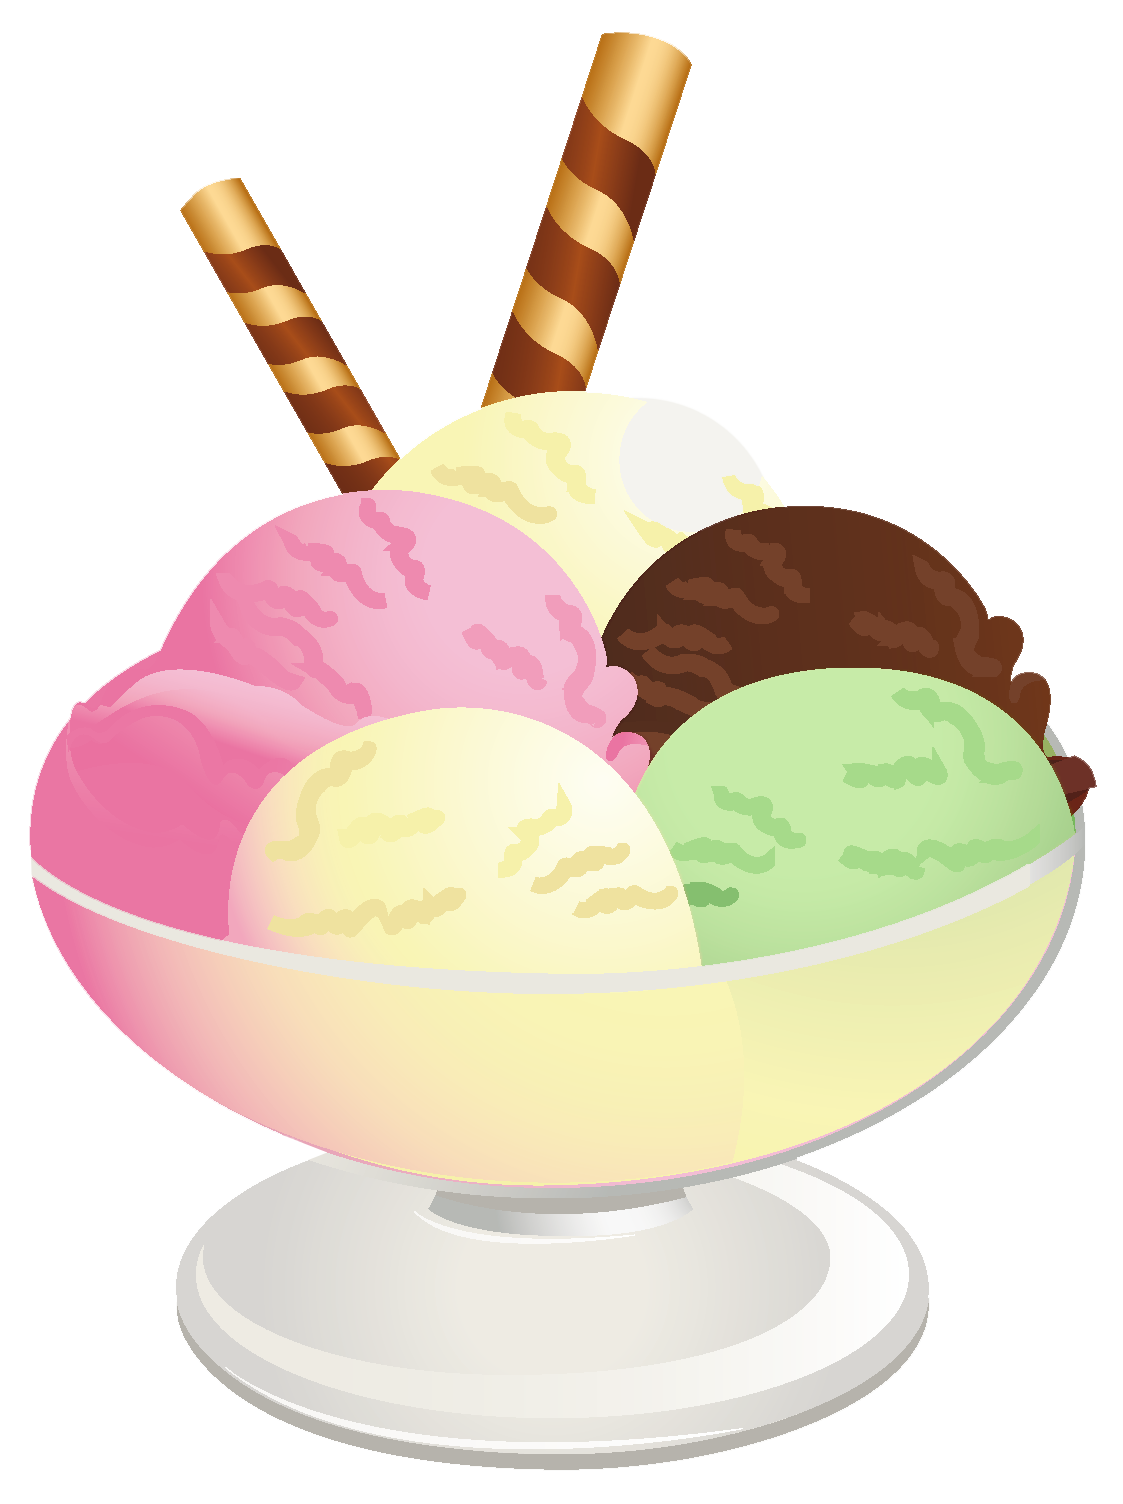 clip art freeuse Ice cream png picture. Sundae clipart